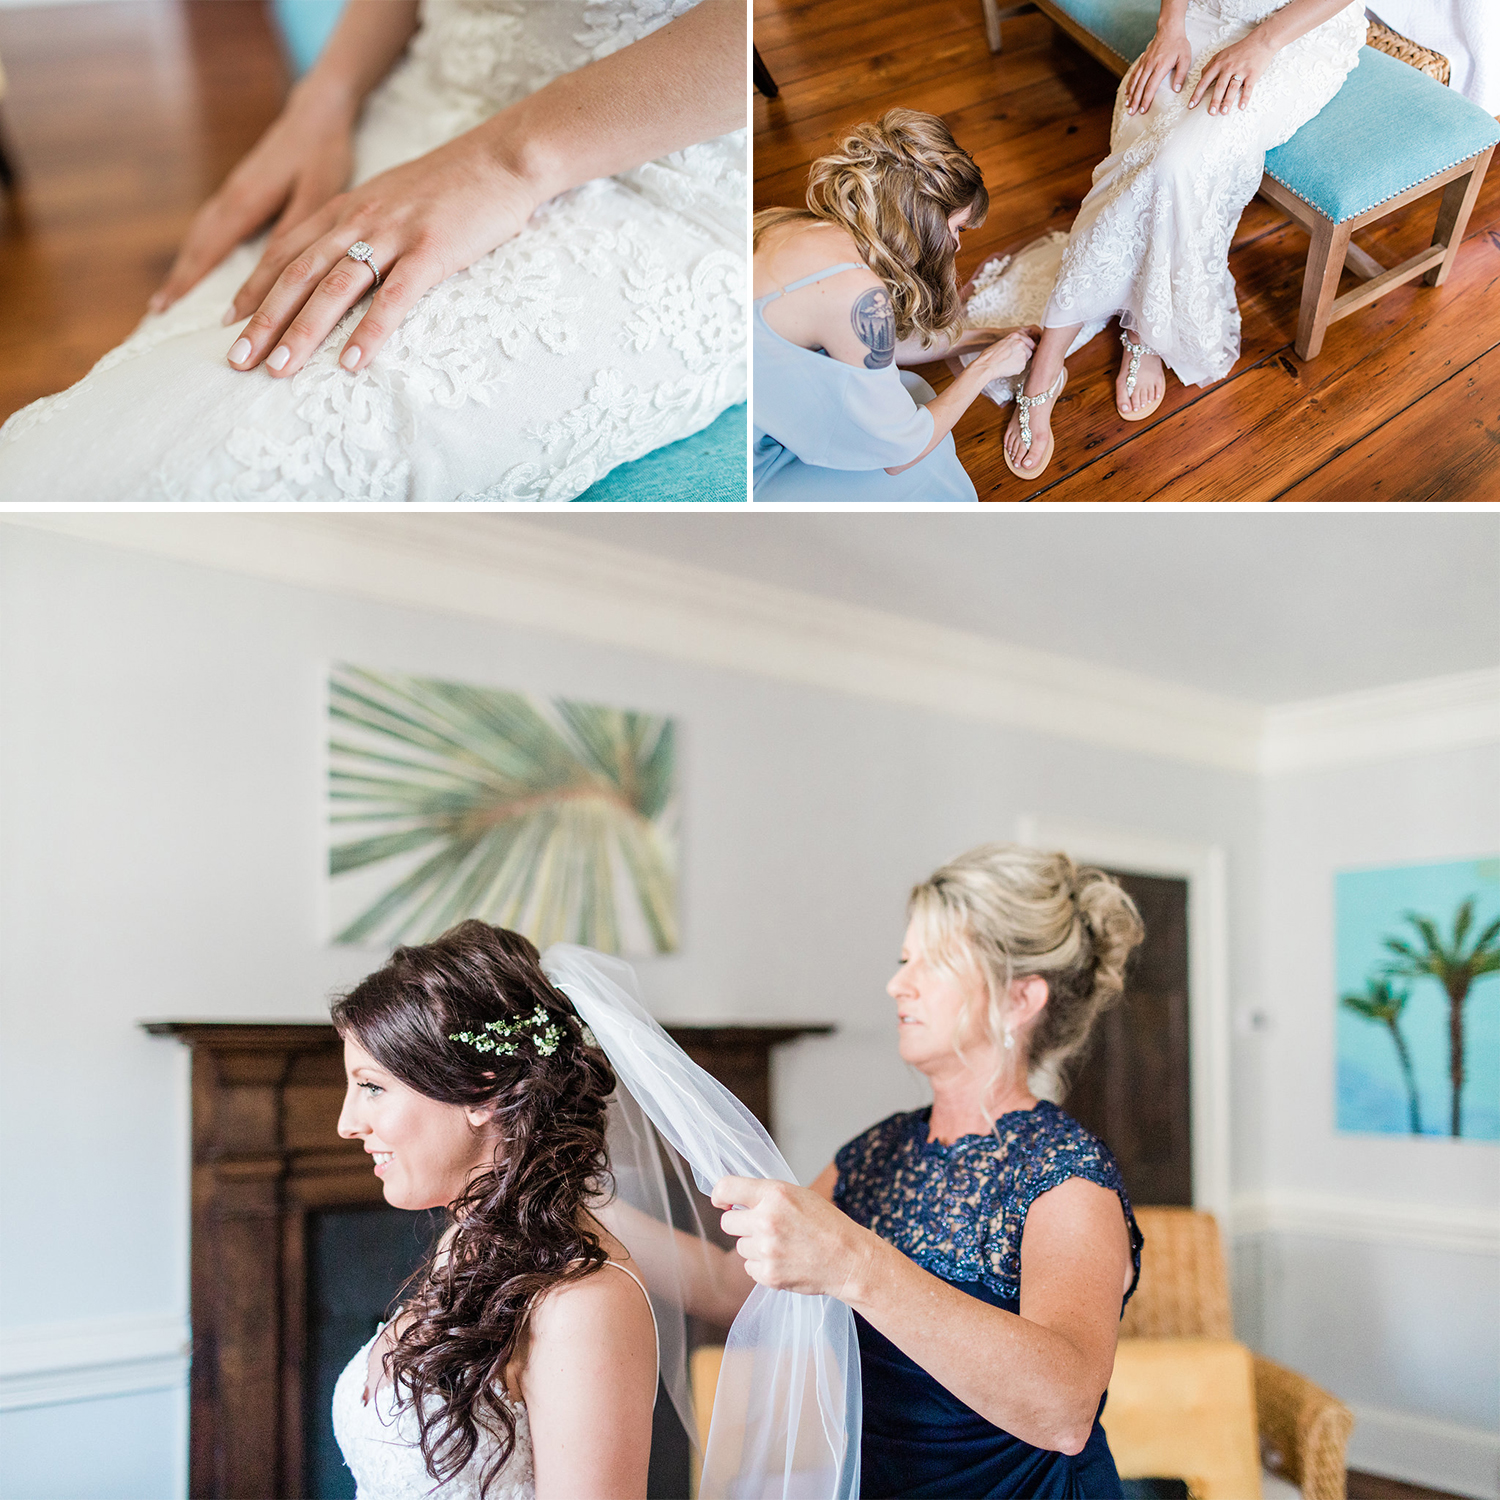 Michelle + Scott - Intimate Savannah Wedding at Soho South Cafe, lace wedding dress | Apt. B Photography